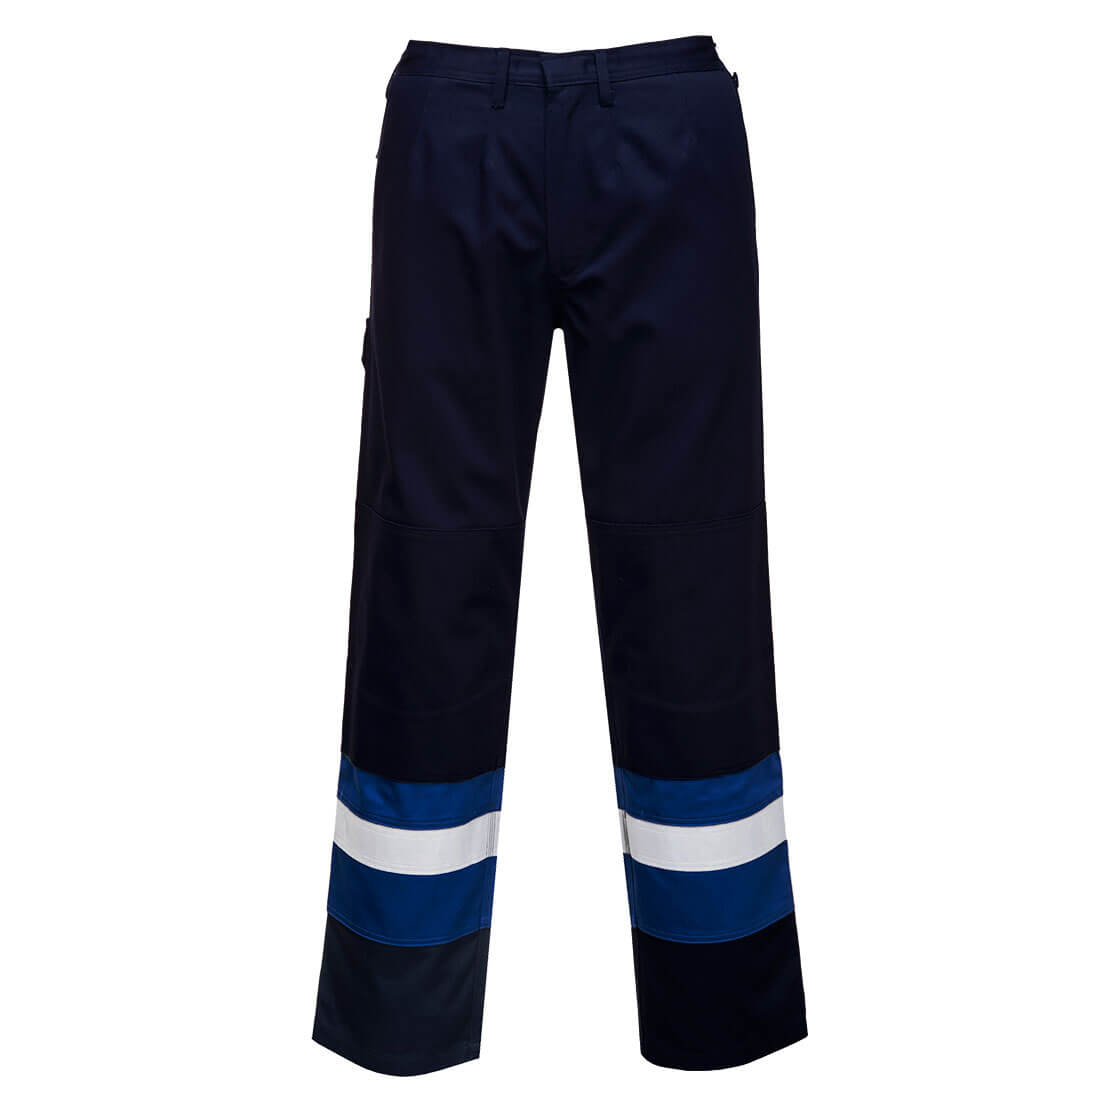 Image of Biz Flame Mens Flame Resistant Plus Trousers Navy / Royal Extra Large 32""